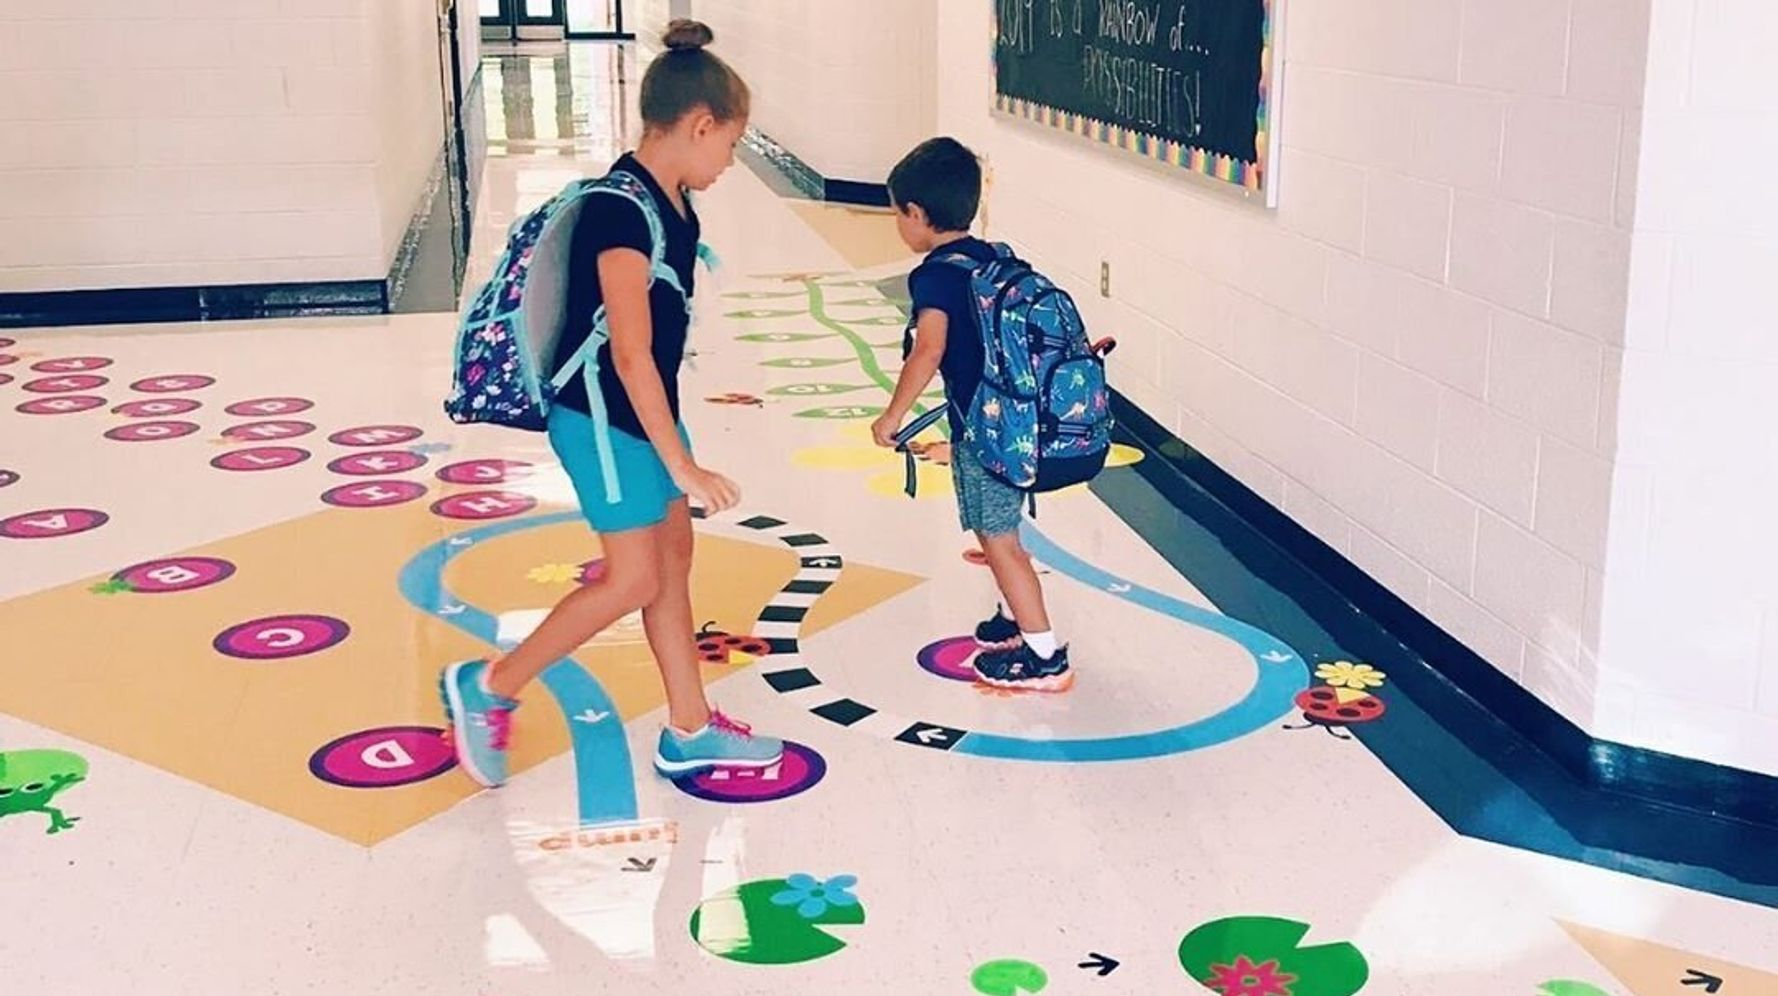 How Hallway Stickers Could Help Students Concentrate